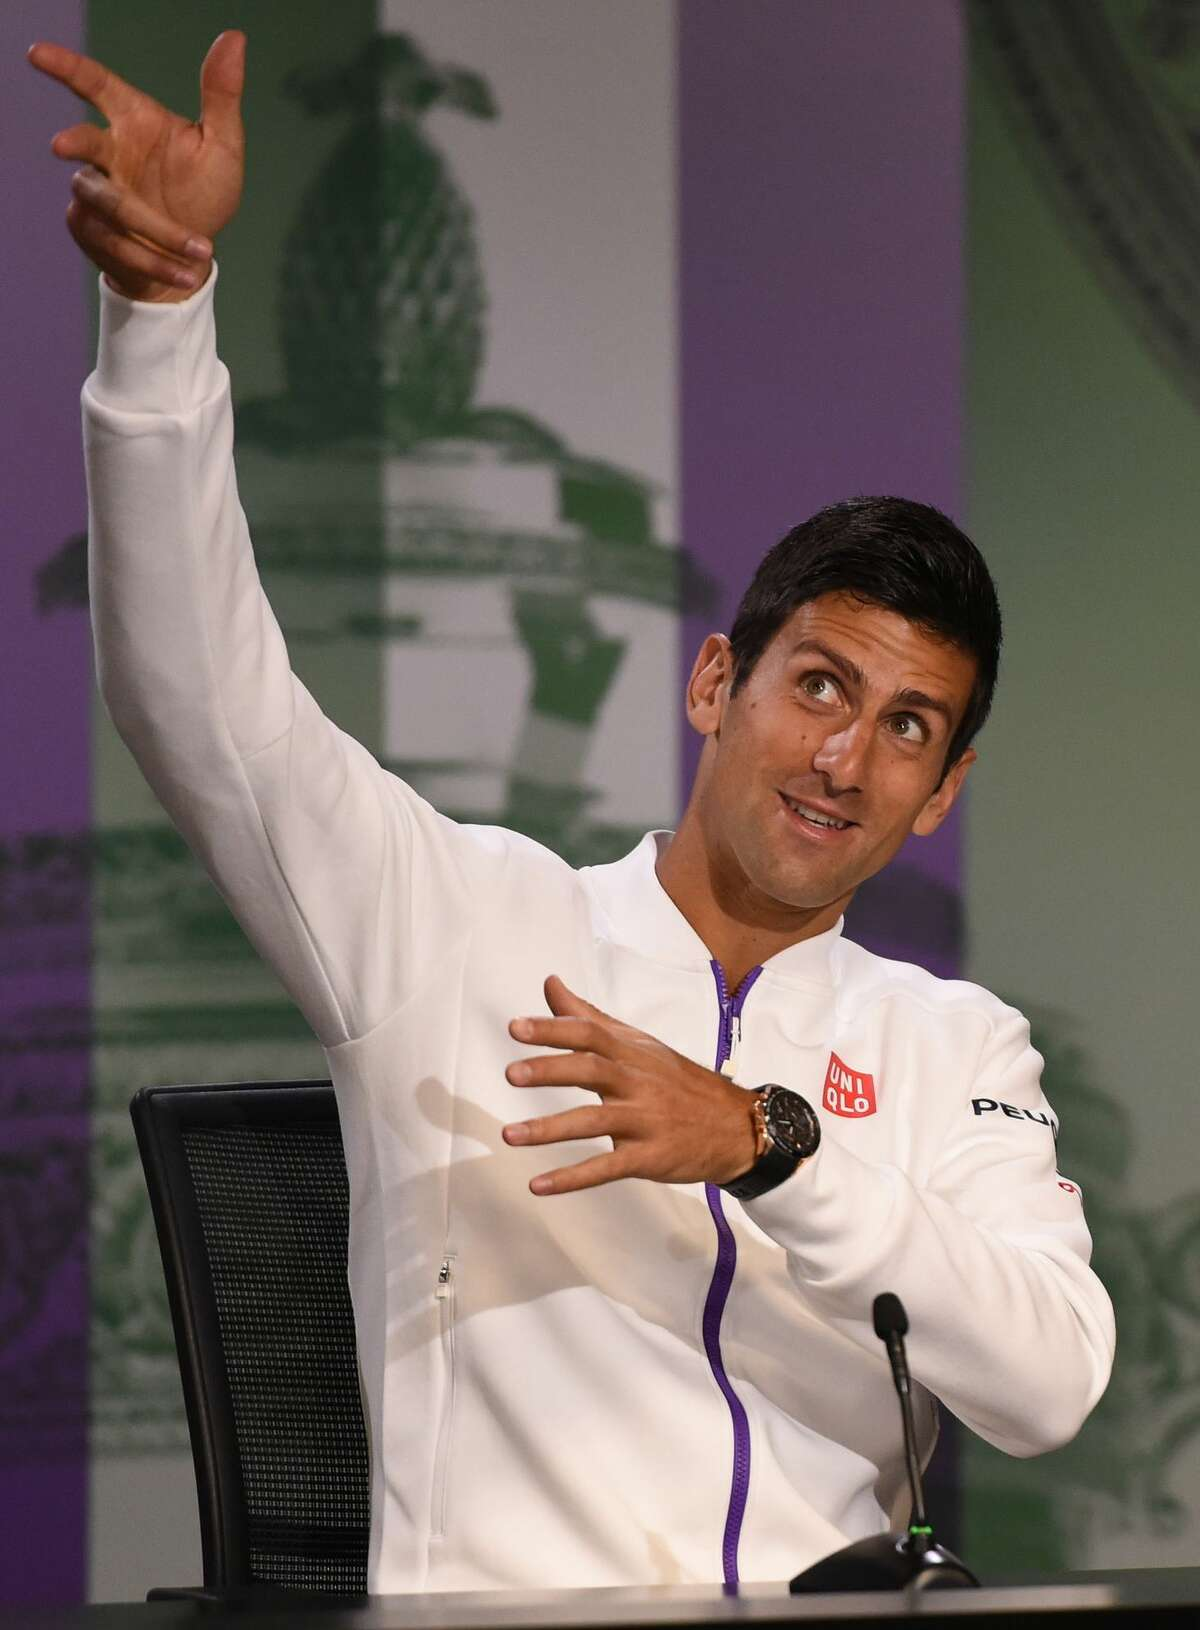 Novak Djokovic gestures during a press conference at the All England Lawn Tennis and Croquet Club on Sunday in London.